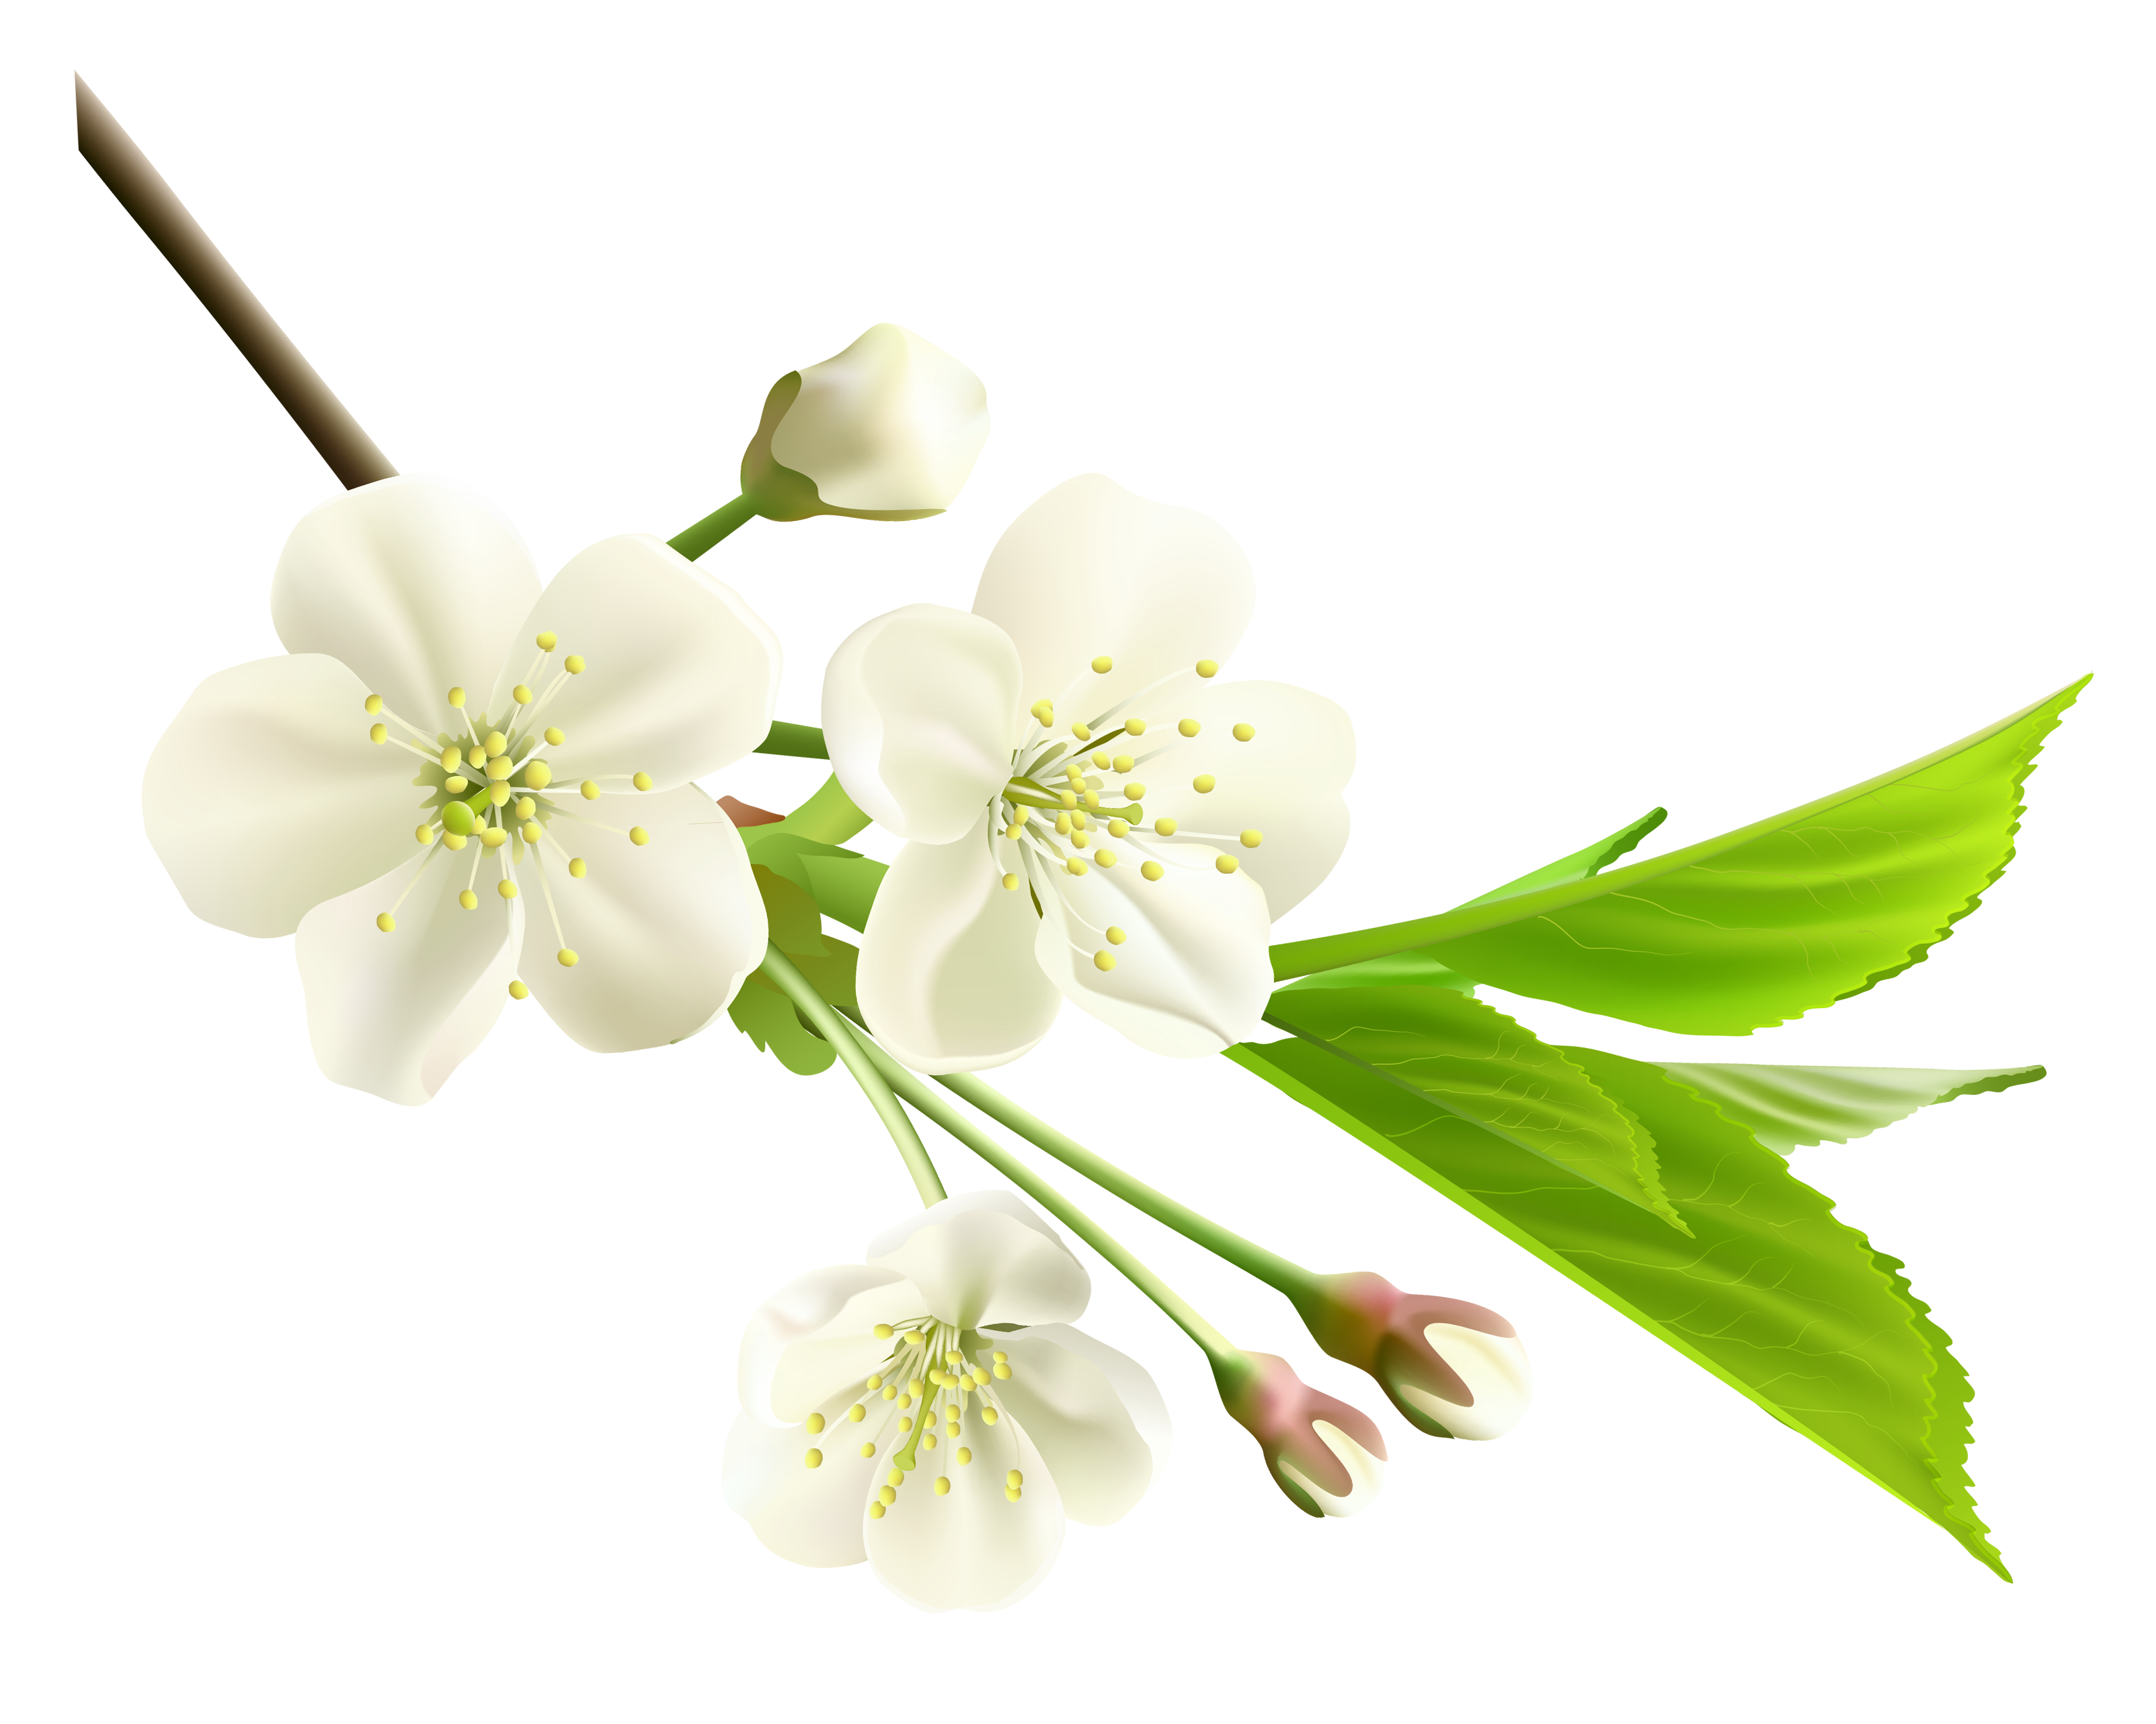 Jasmine flower clipart black and white graphic black and white download Spring Branch with White Tree Flowers PNG Clipart | Godly ... graphic black and white download